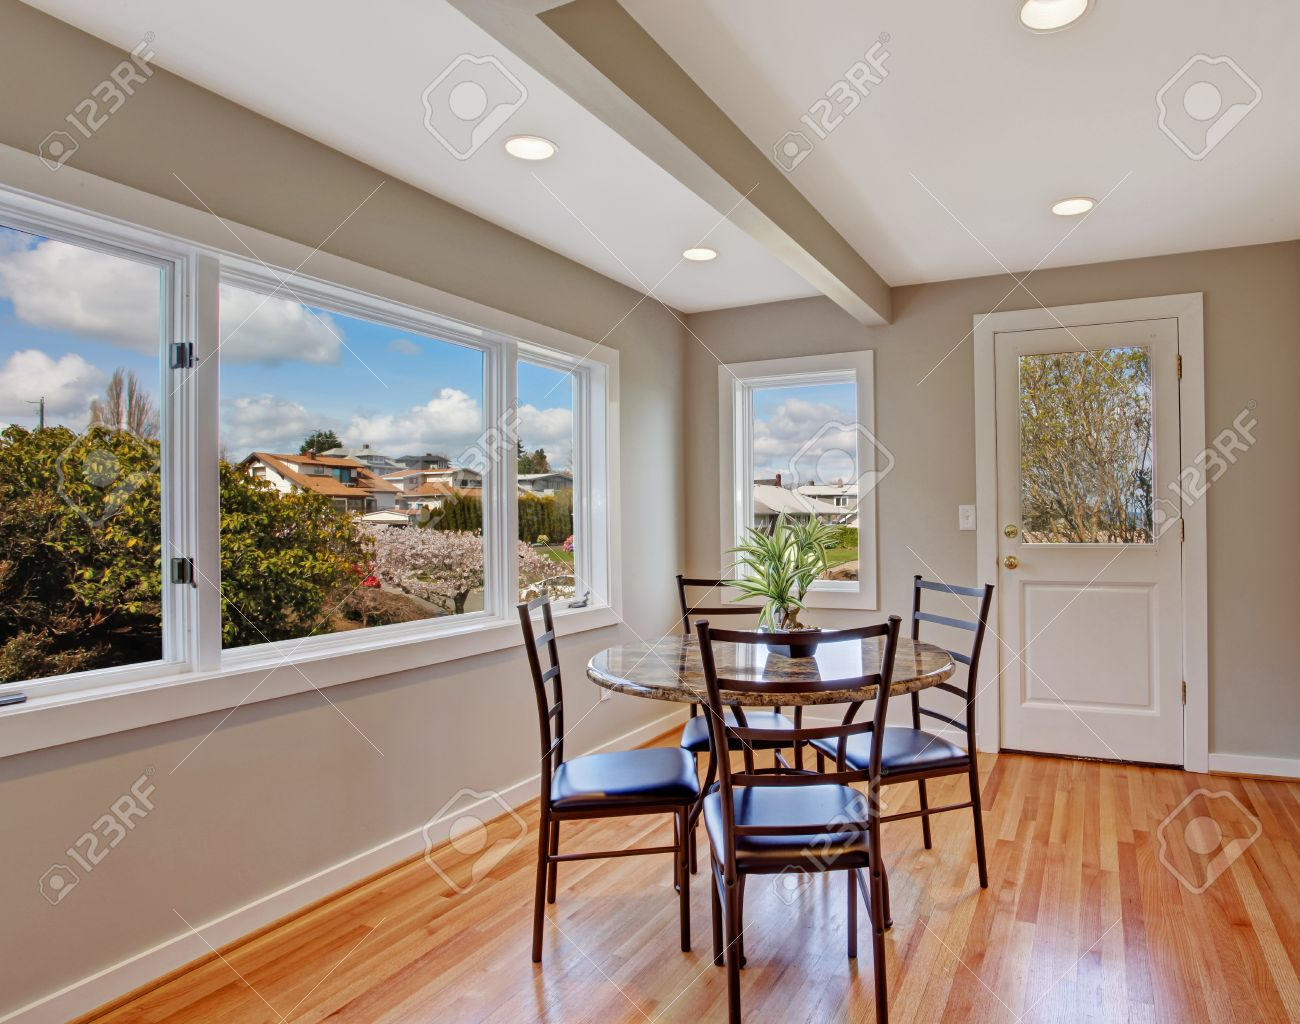 Attractive Bright Dining Room With Shiny Hardwood Floor And Light Grey Walls. View Of  Dning Table